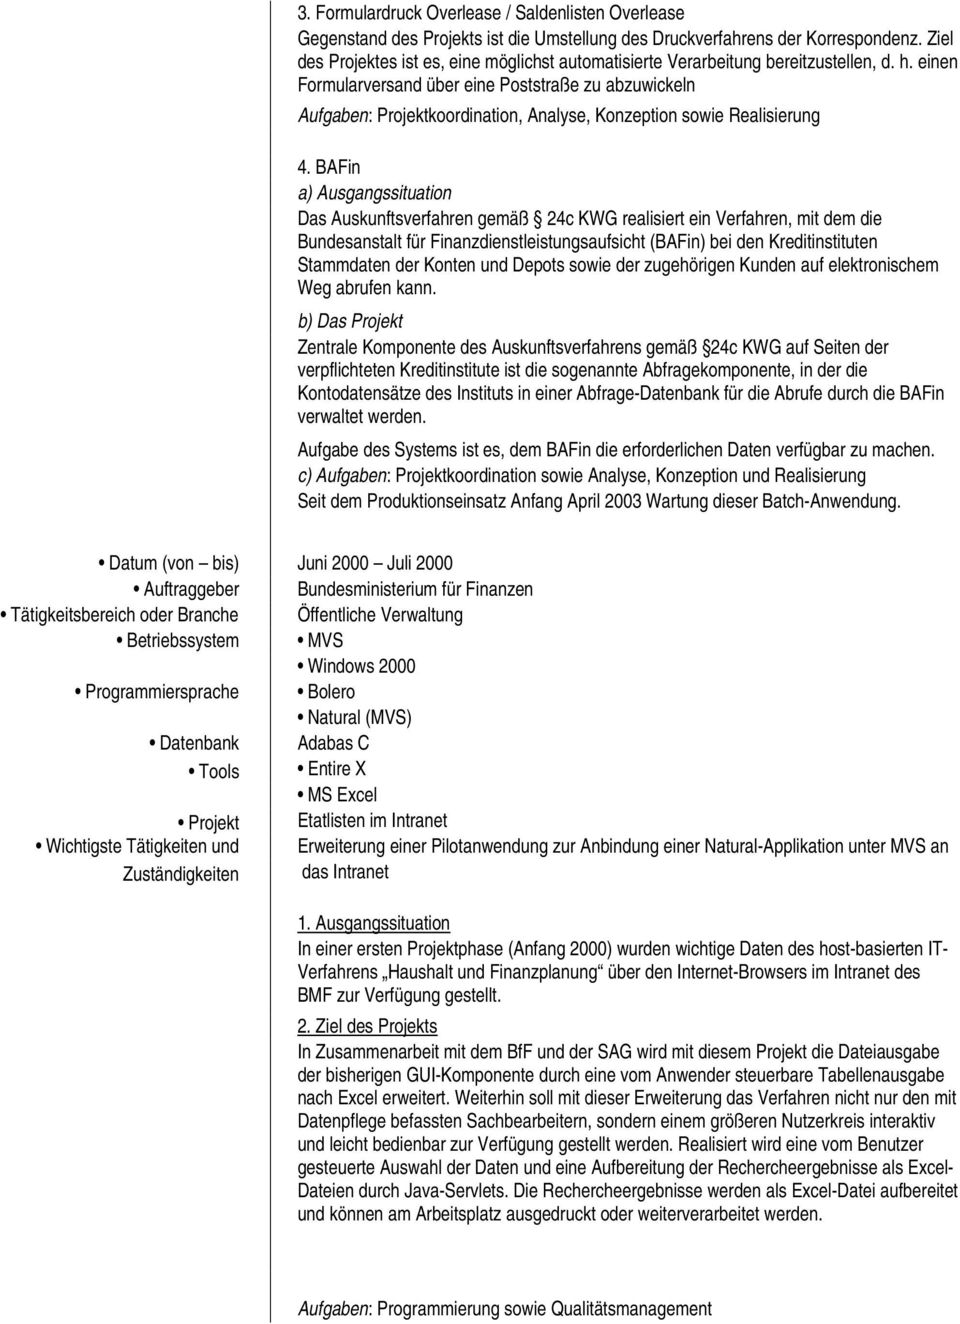 Beste Werbeleiter Lebenslauf Stichprobe Galerie - Entry Level Resume ...